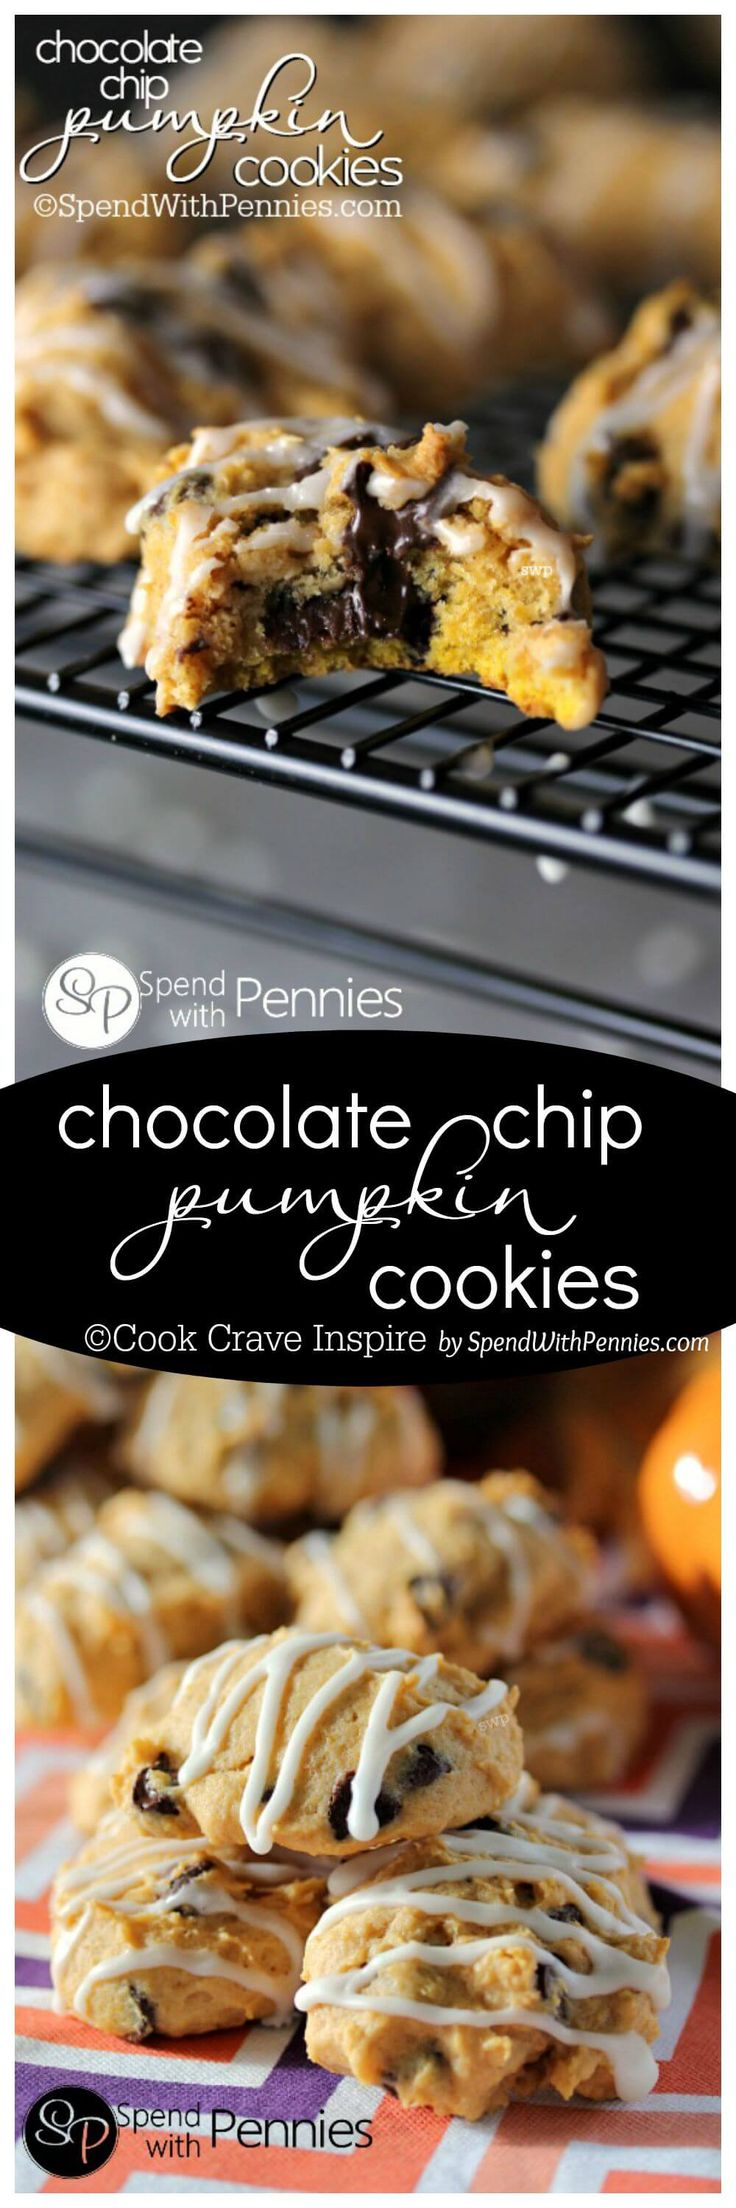 Pumpkin cookies, Soft pumpkin cookies and Chocolate chips on Pinterest